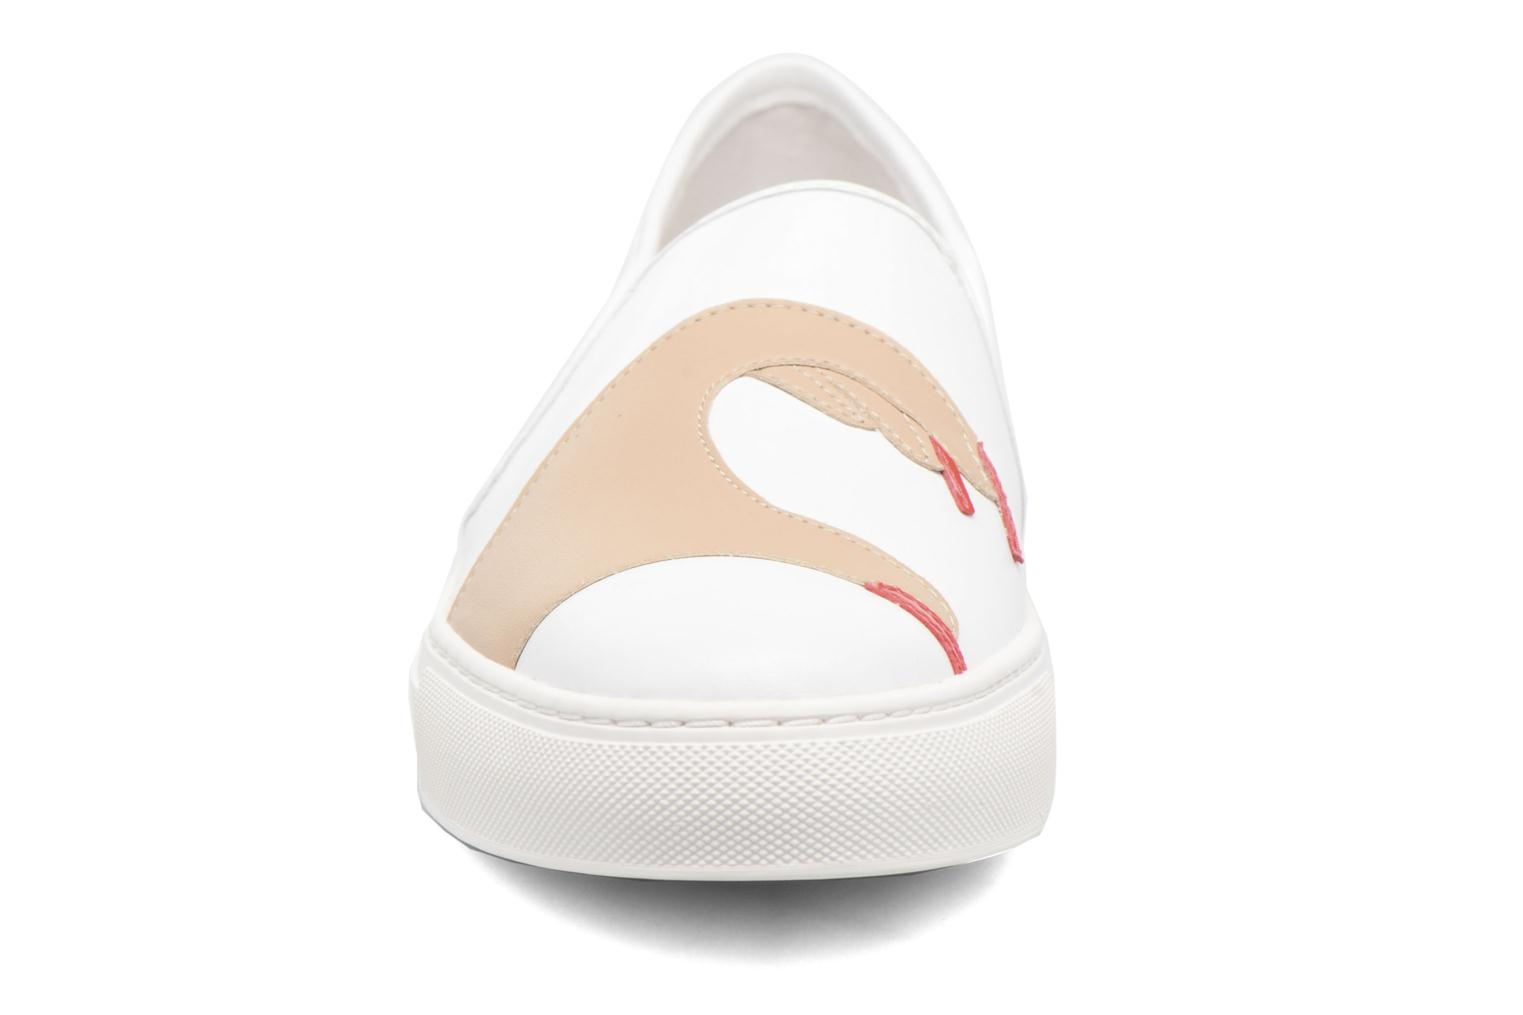 Baskets Katy Perry The Heart Blanc vue portées chaussures